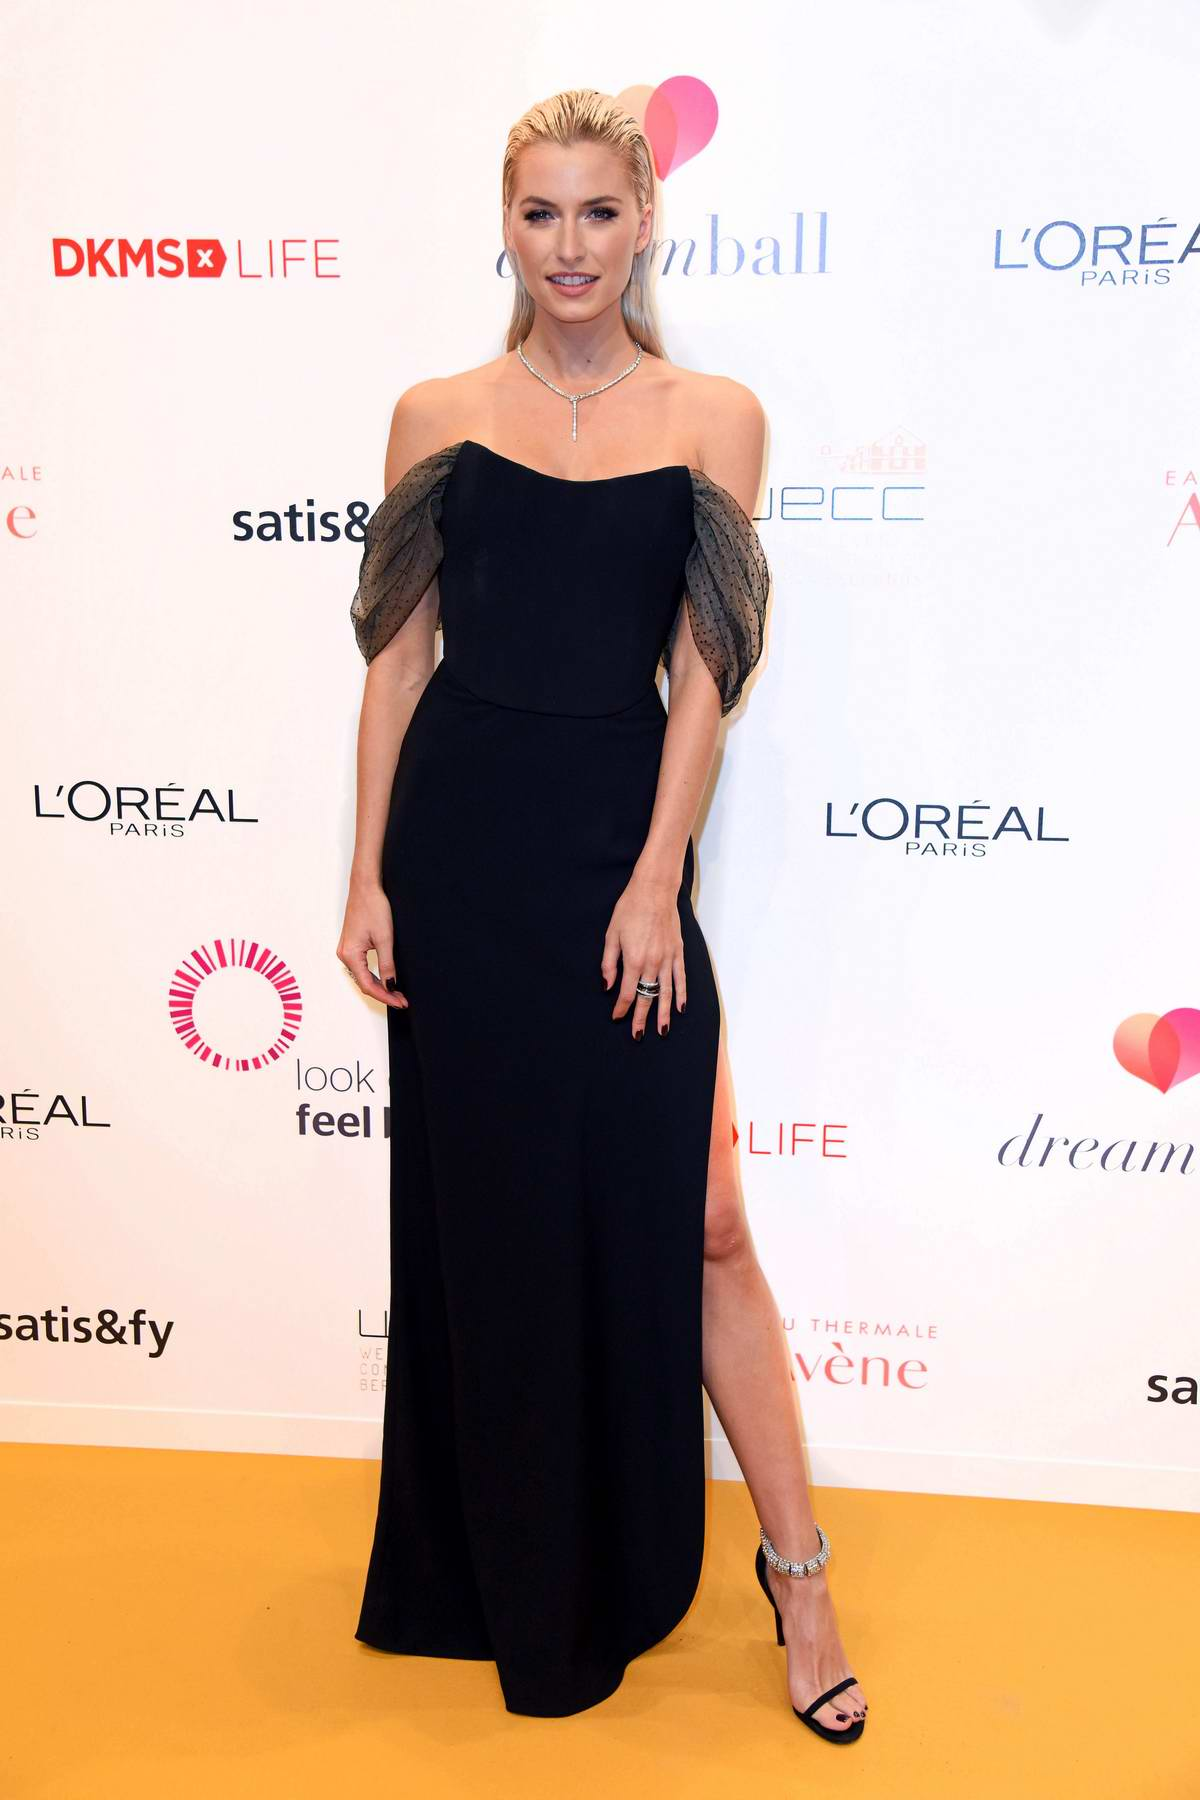 Lena Gercke attends Dreamball 2018 at Westhafen Event & Convention Center (WECC) in Berlin, Germany